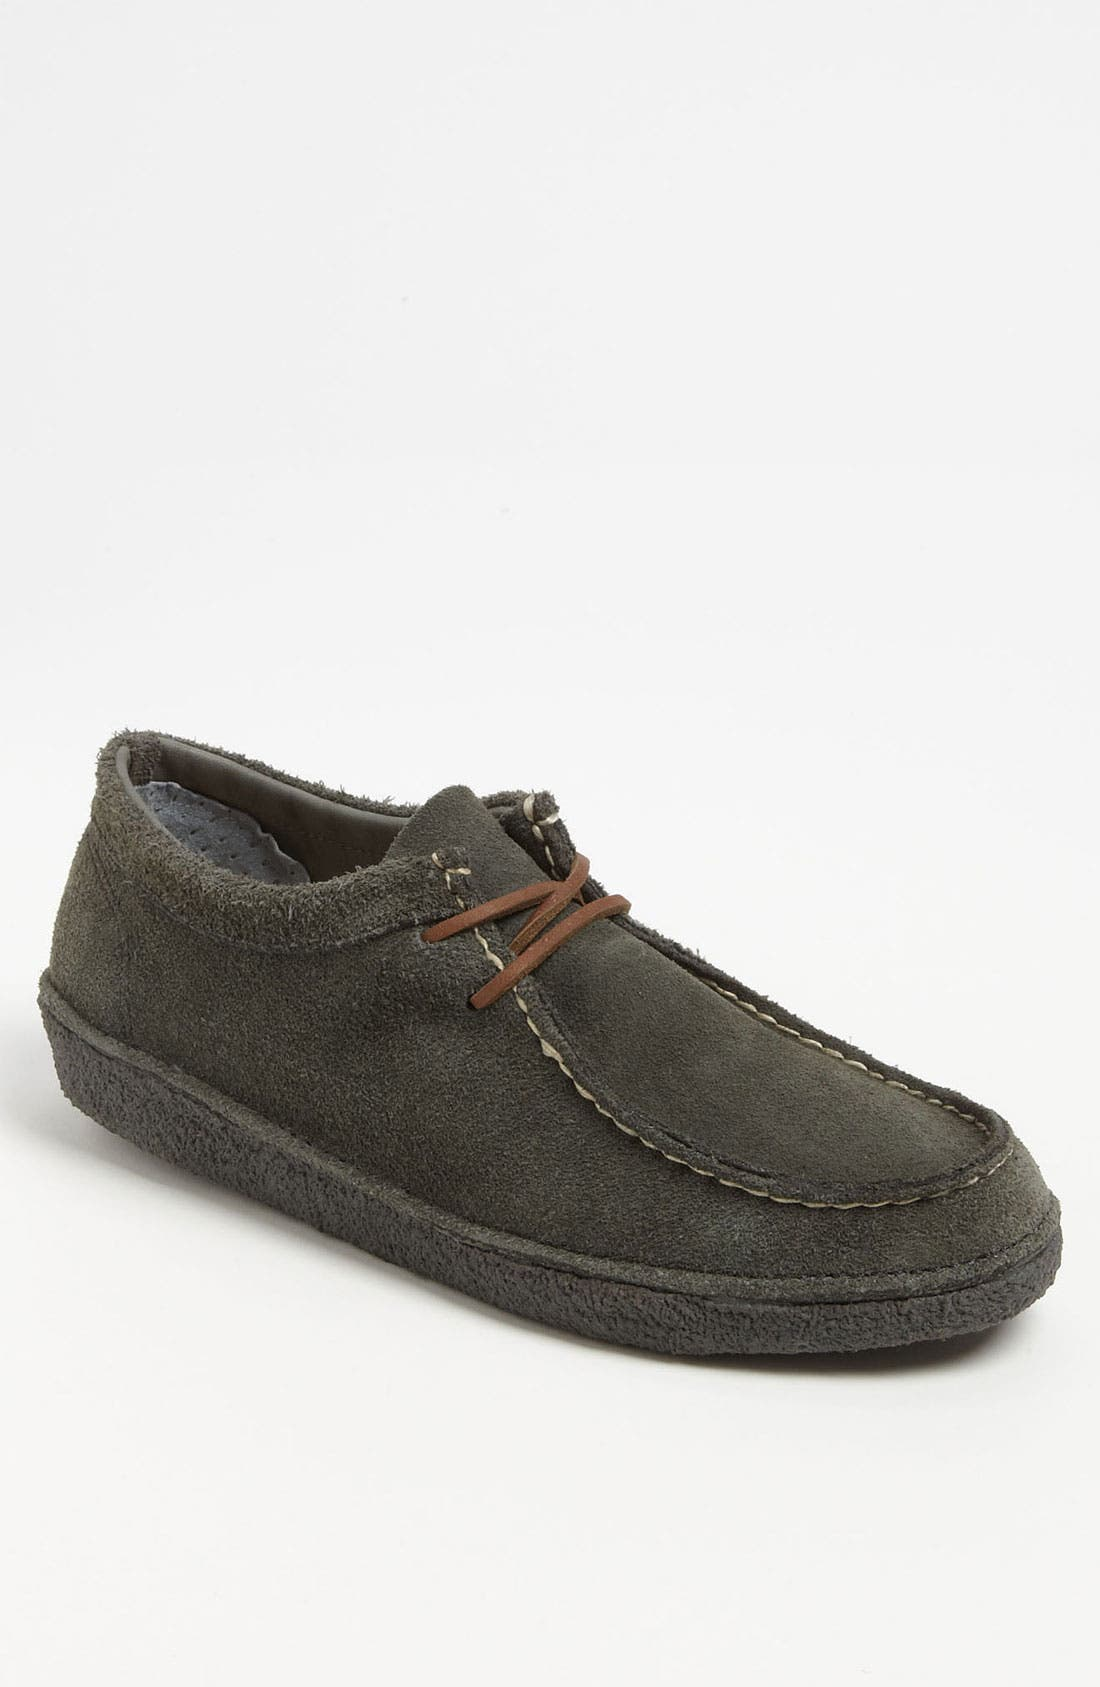 Main Image - SeaVees '2-Eye Oxford' Moccasin